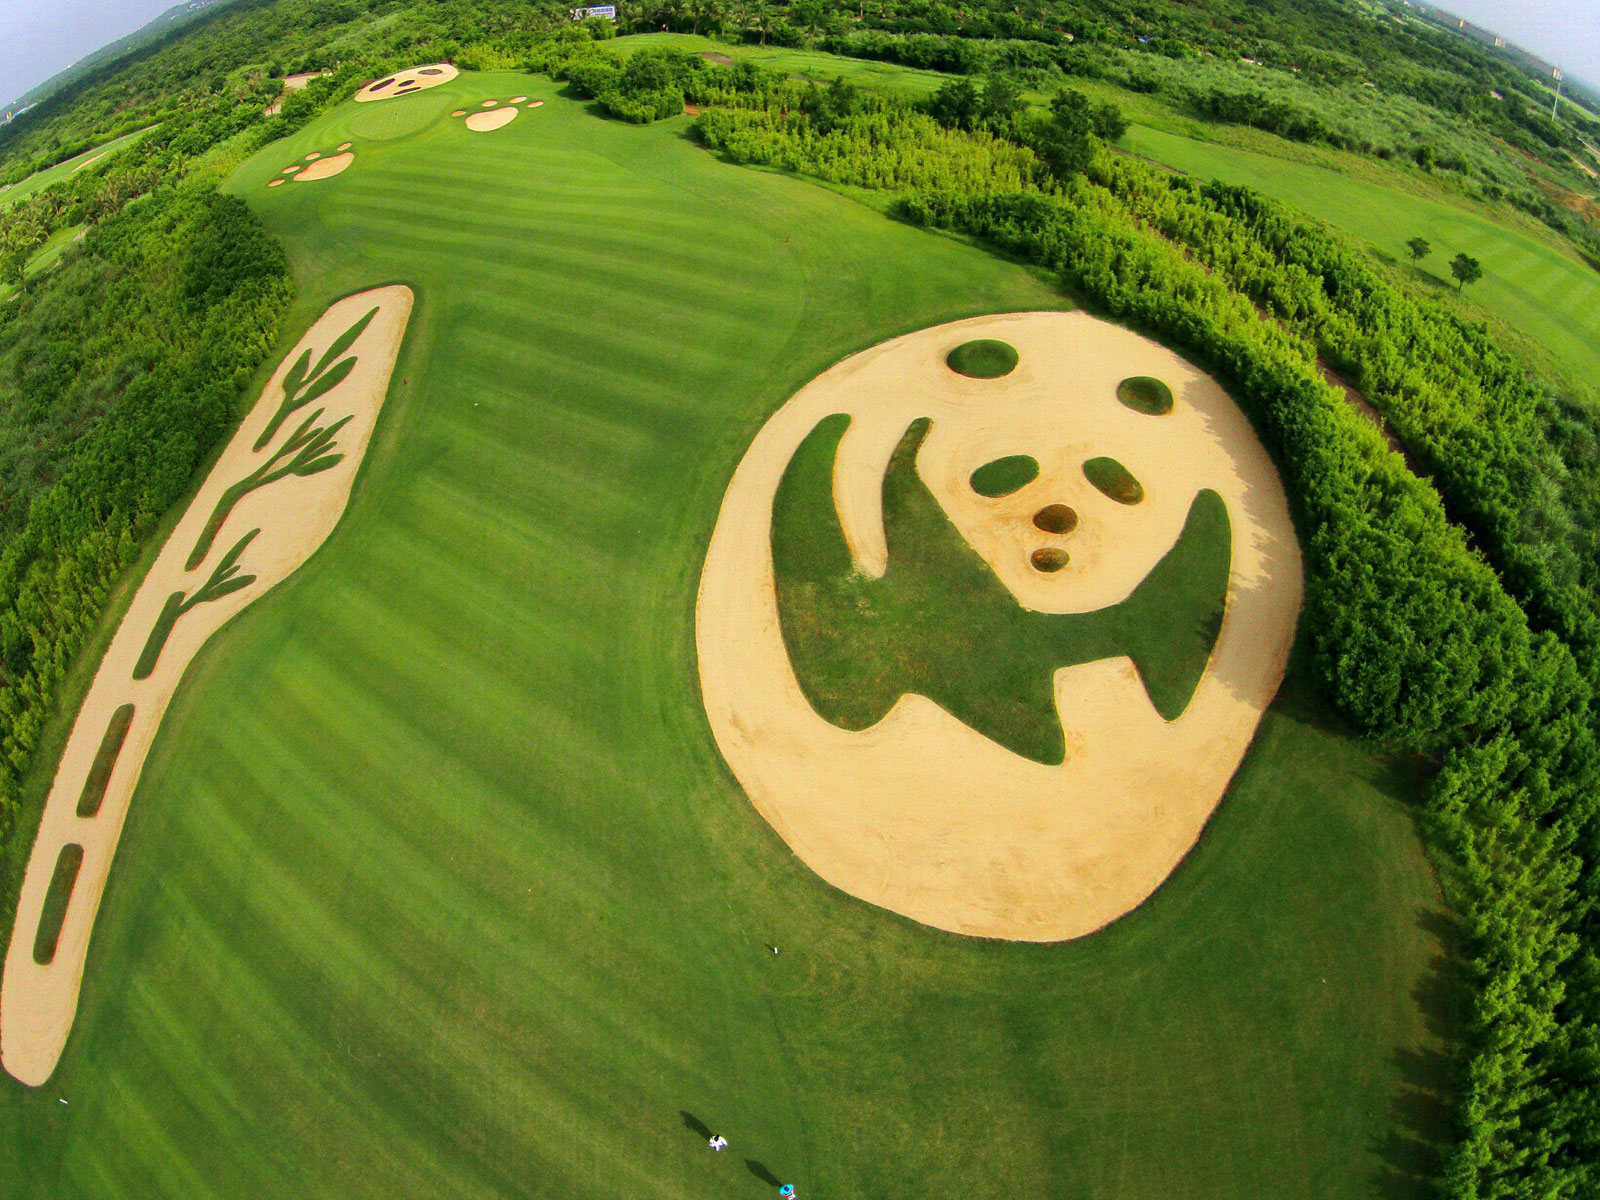 Mission Hills Course in China